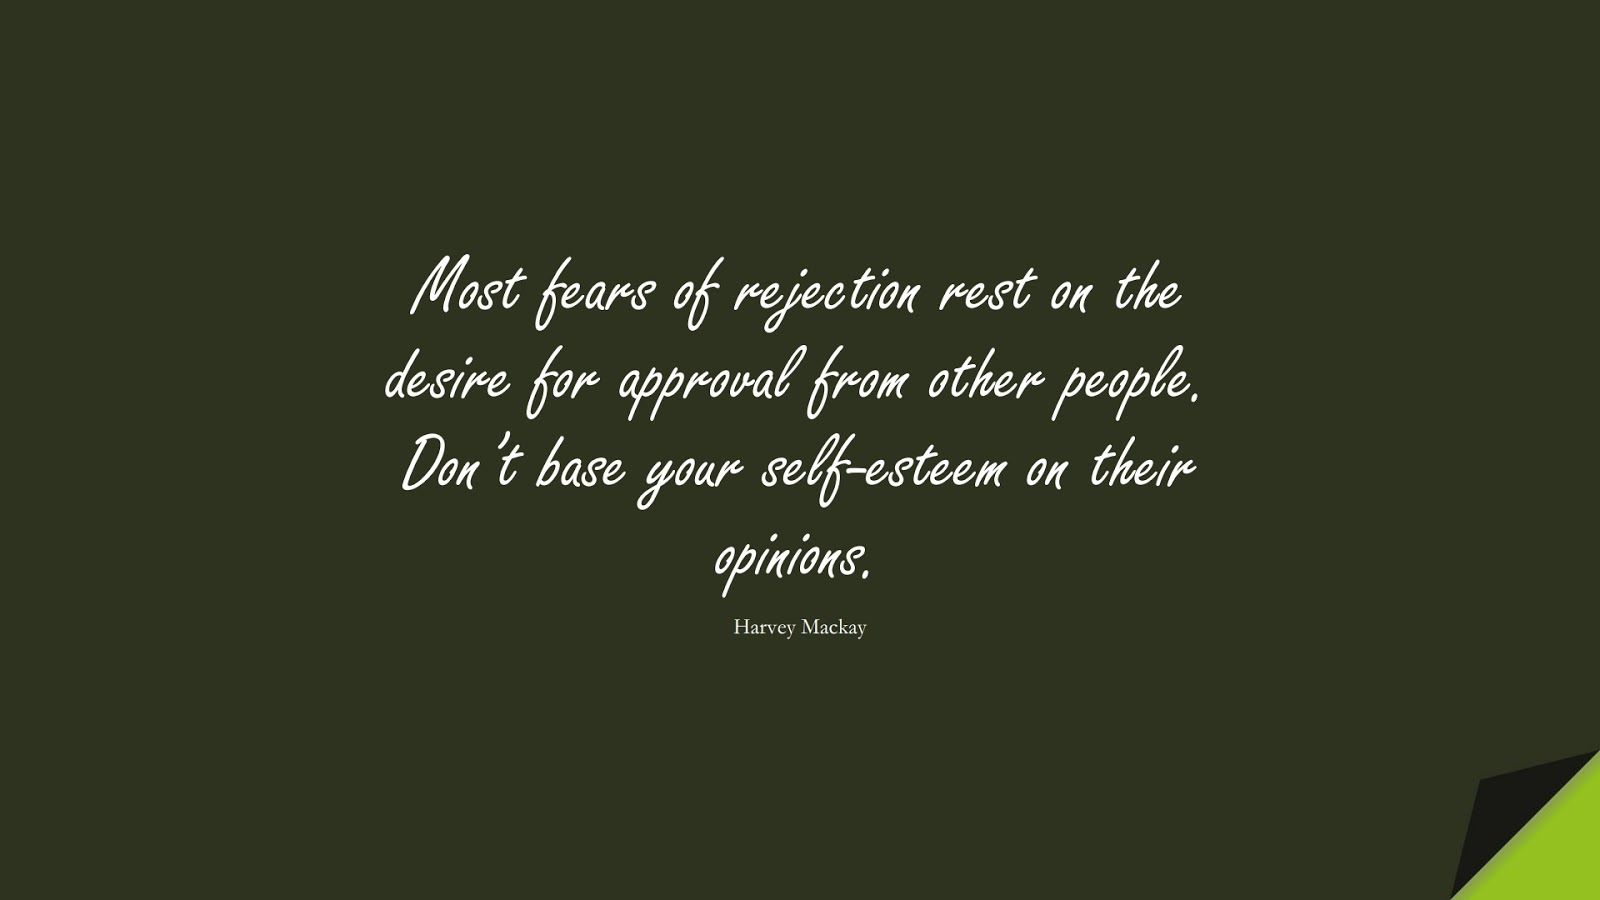 Most fears of rejection rest on the desire for approval from other people. Don't base your self-esteem on their opinions. (Harvey Mackay);  #SelfEsteemQuotes